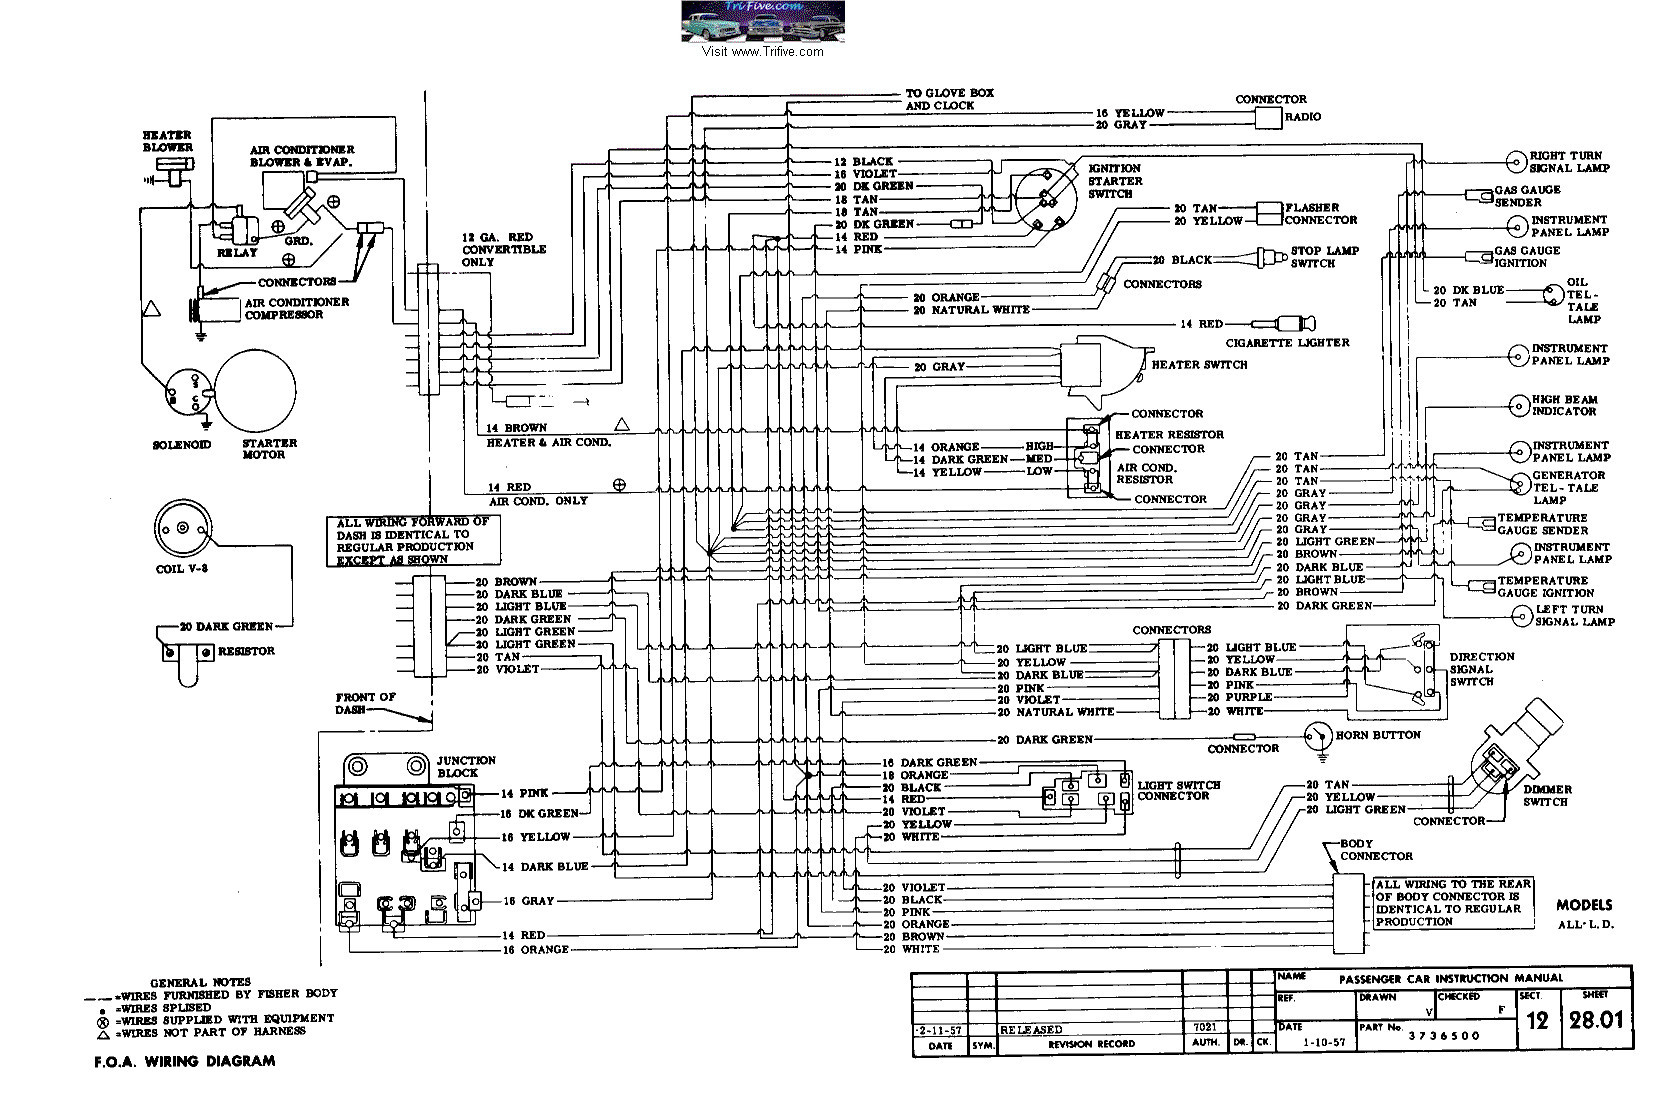 57 chevy headlight switch wiring wiring diagram 55 chevy heater diagram wiring